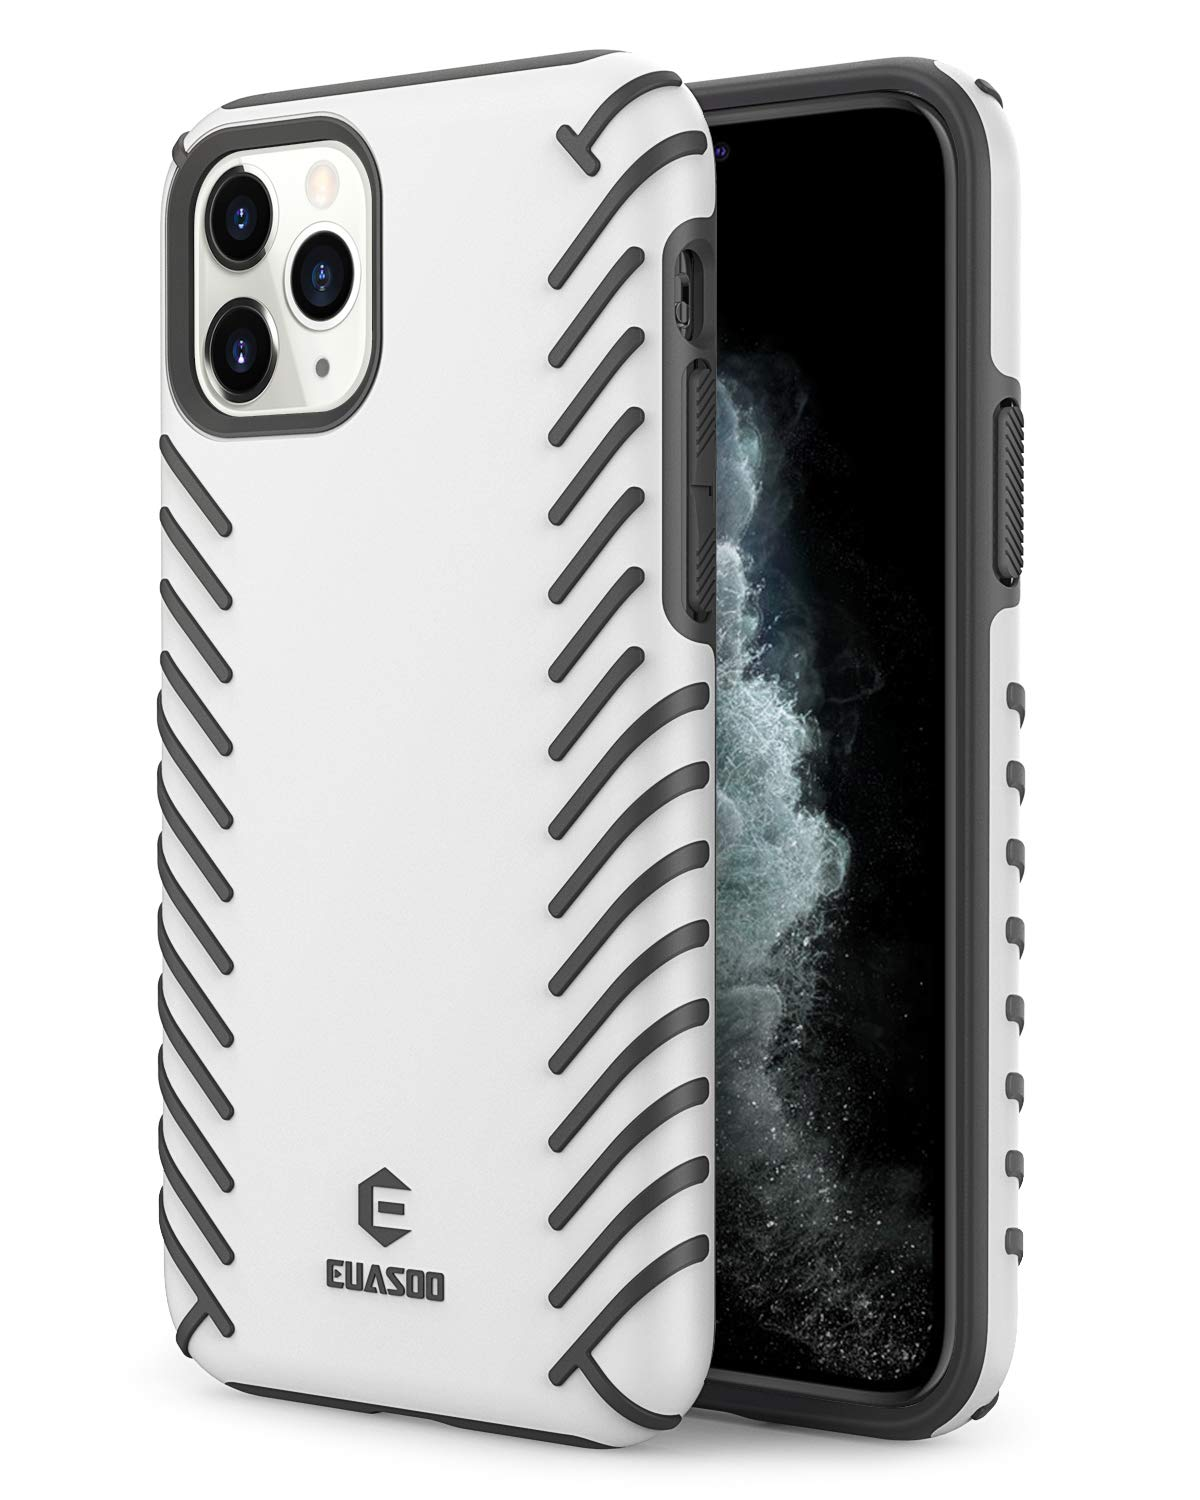 EUASOO iPhone 11 Pro Case,PC + Soft TPU Cover Double Protection, High Effective Heat Dissipation,Support Wireless Charging,Anti-Scratch Resistant Cover for iPhone 11 Pro,White